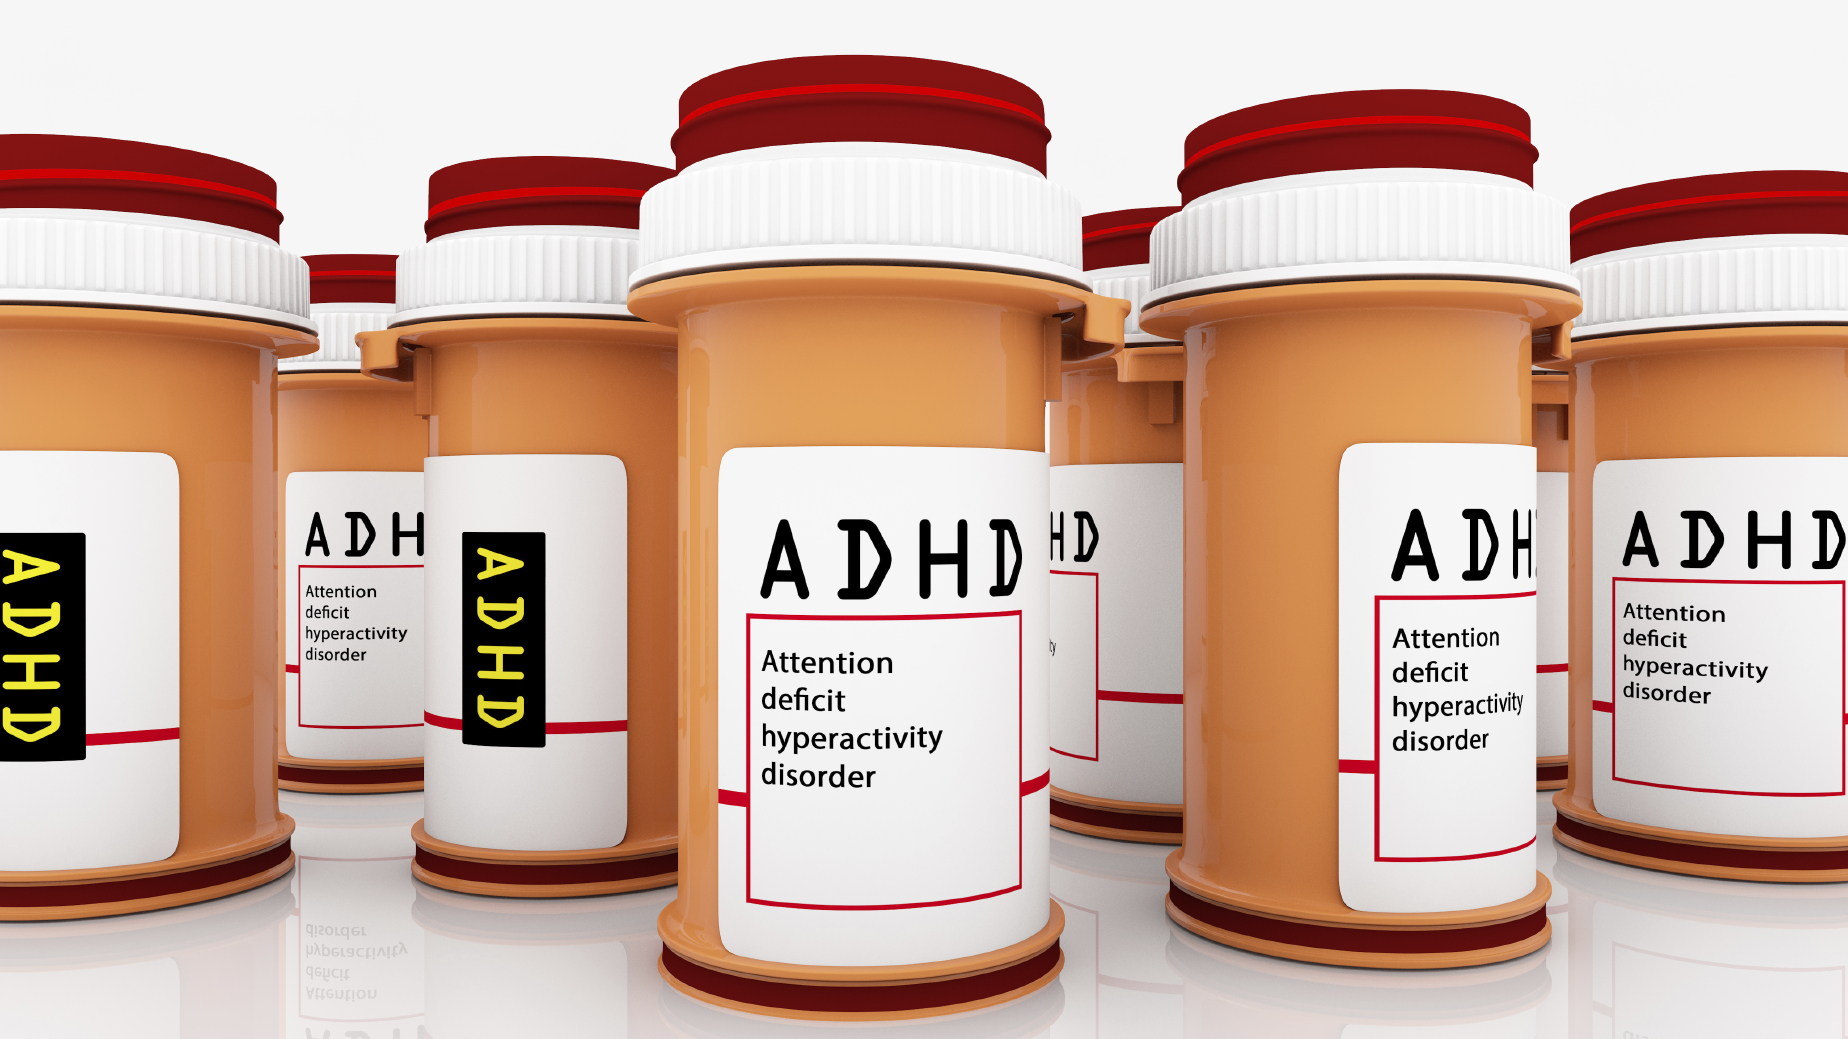 Do Adhd Drugs Increase Risk Of Cardiac Disease In Children